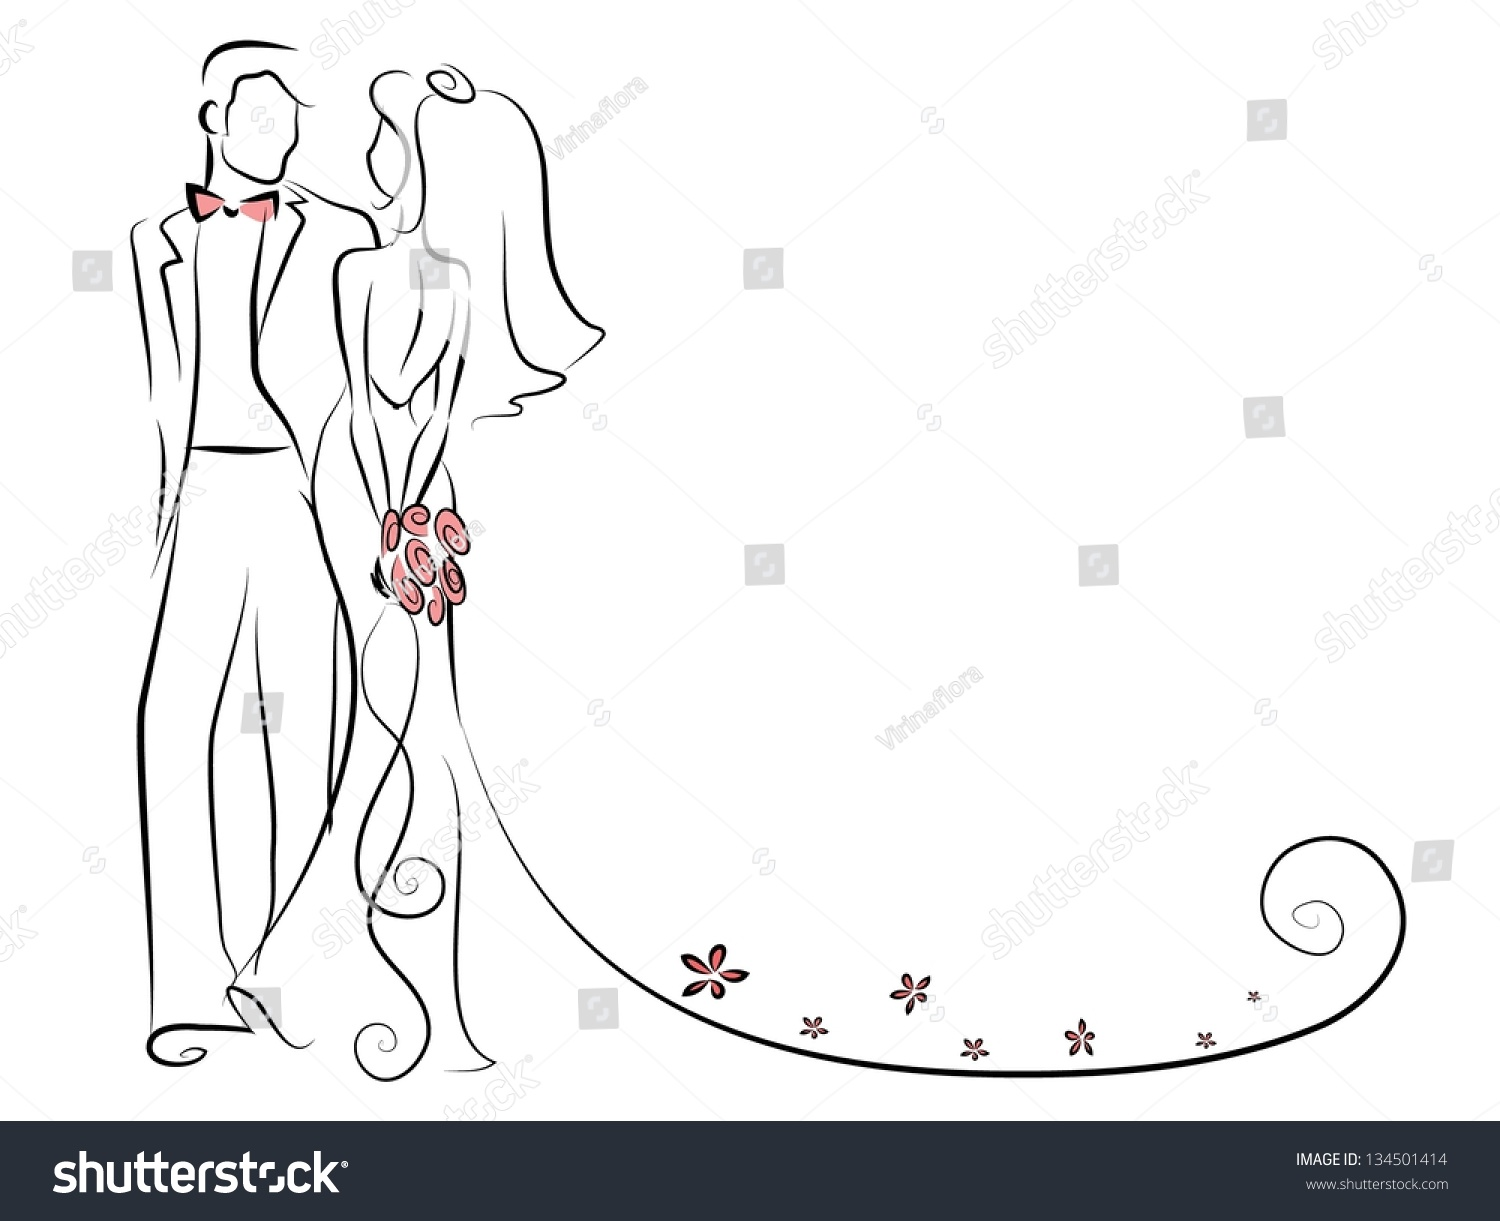 Silhouette Bride Groom Background Wedding Invitation Stock Vector